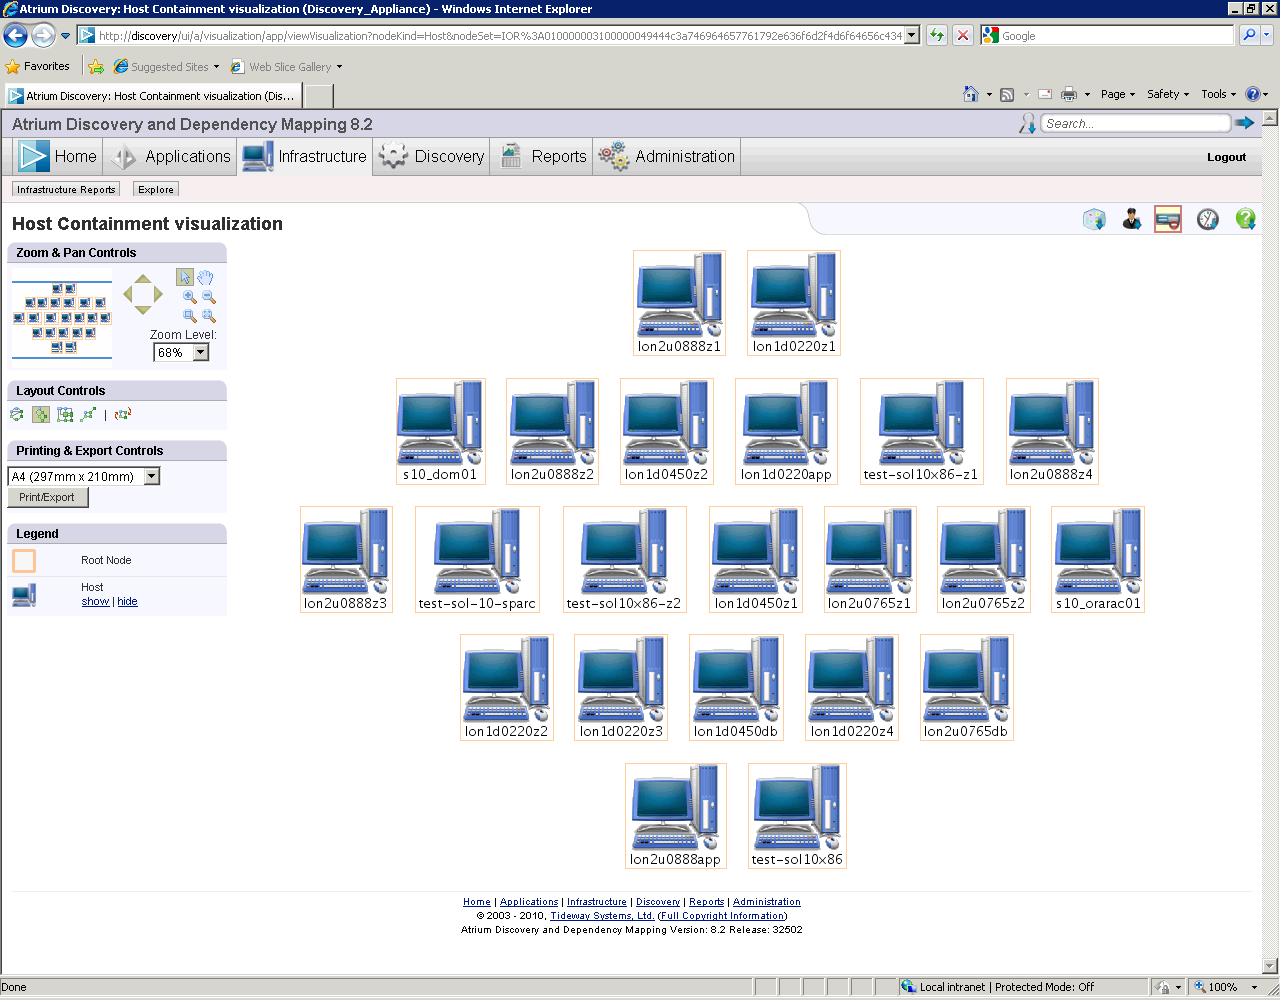 bmc atrium discovery and dependency mapping with 7940989 Jak Utrzymac Cmdb Atrium Discovery Dependency Mapping on Marco Antonelli 34a36661 also Capacidades Gestin De Infraestructuras furthermore Application Mappings additionally Application Migration Guideline Document furthermore 1bh07kj.